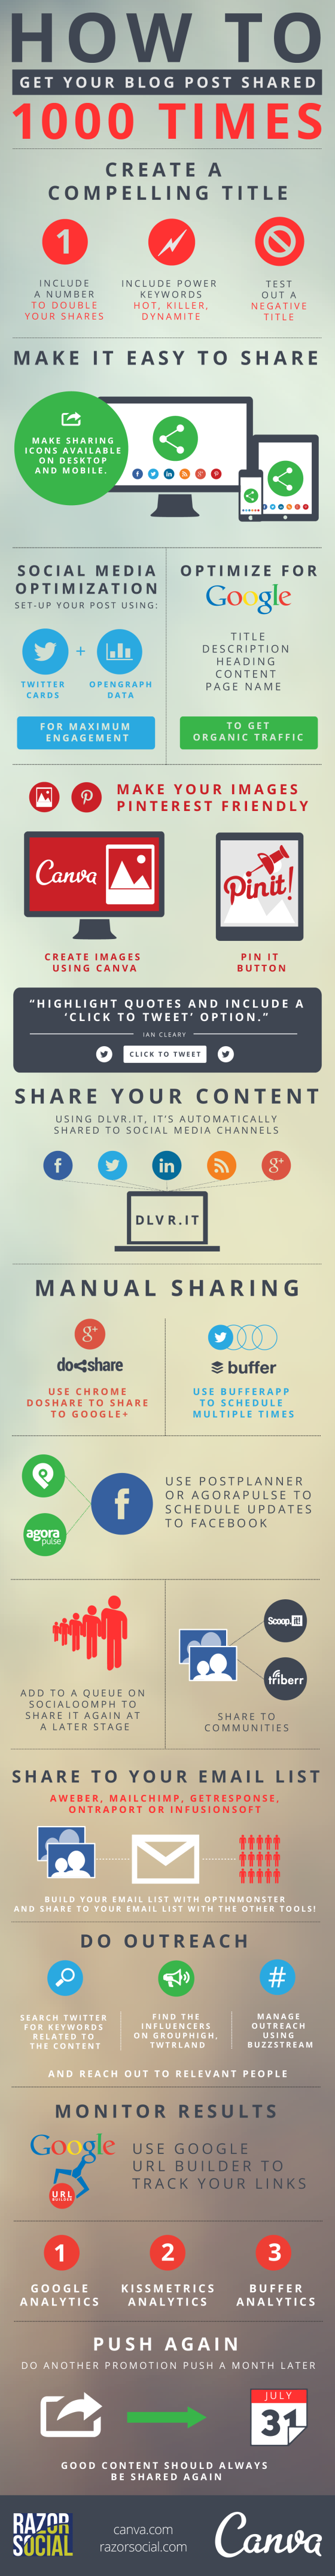 infographic_get blog shared